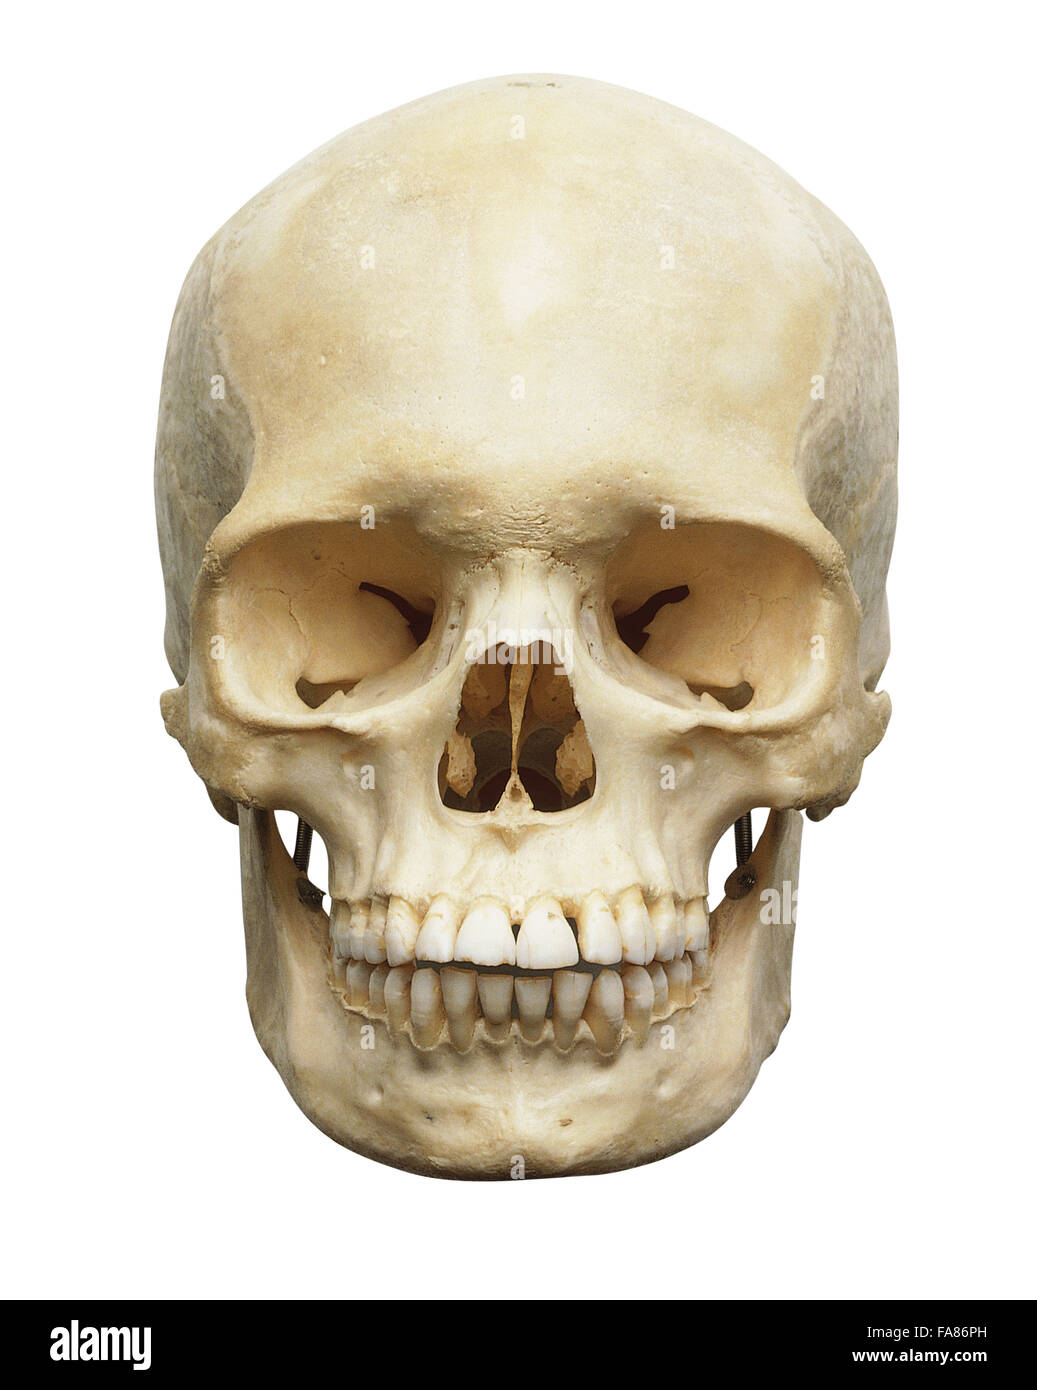 Human Skull Front View Stock Photo